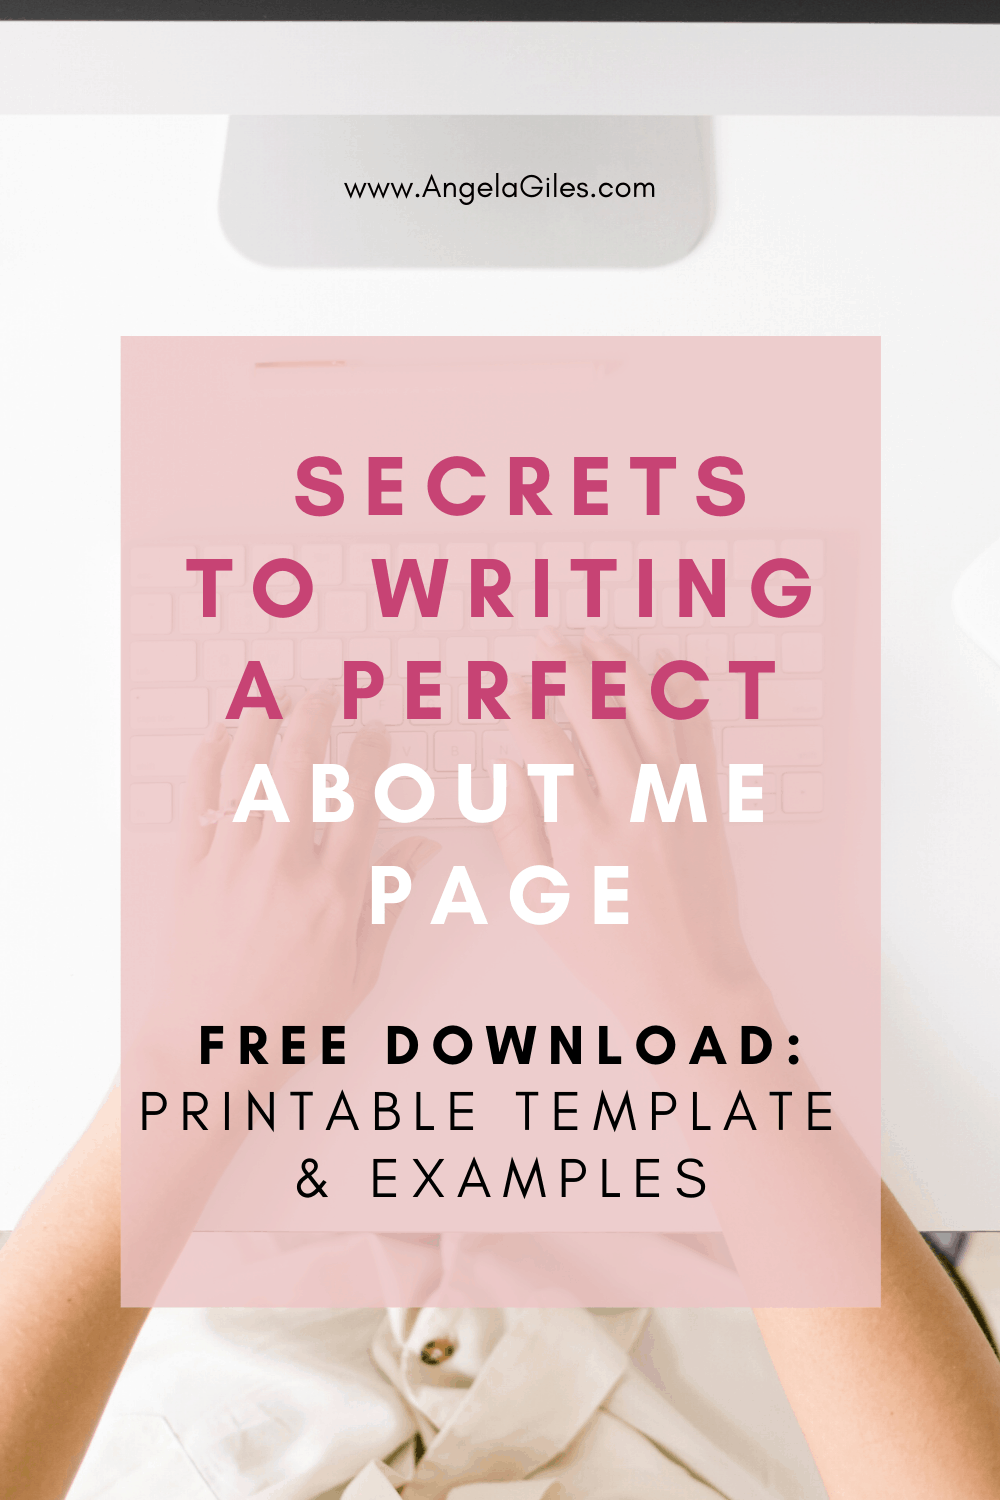 How to Write About Me Page (WITH FREE PRINTABLE GRAPHIC & EXAMPLES)